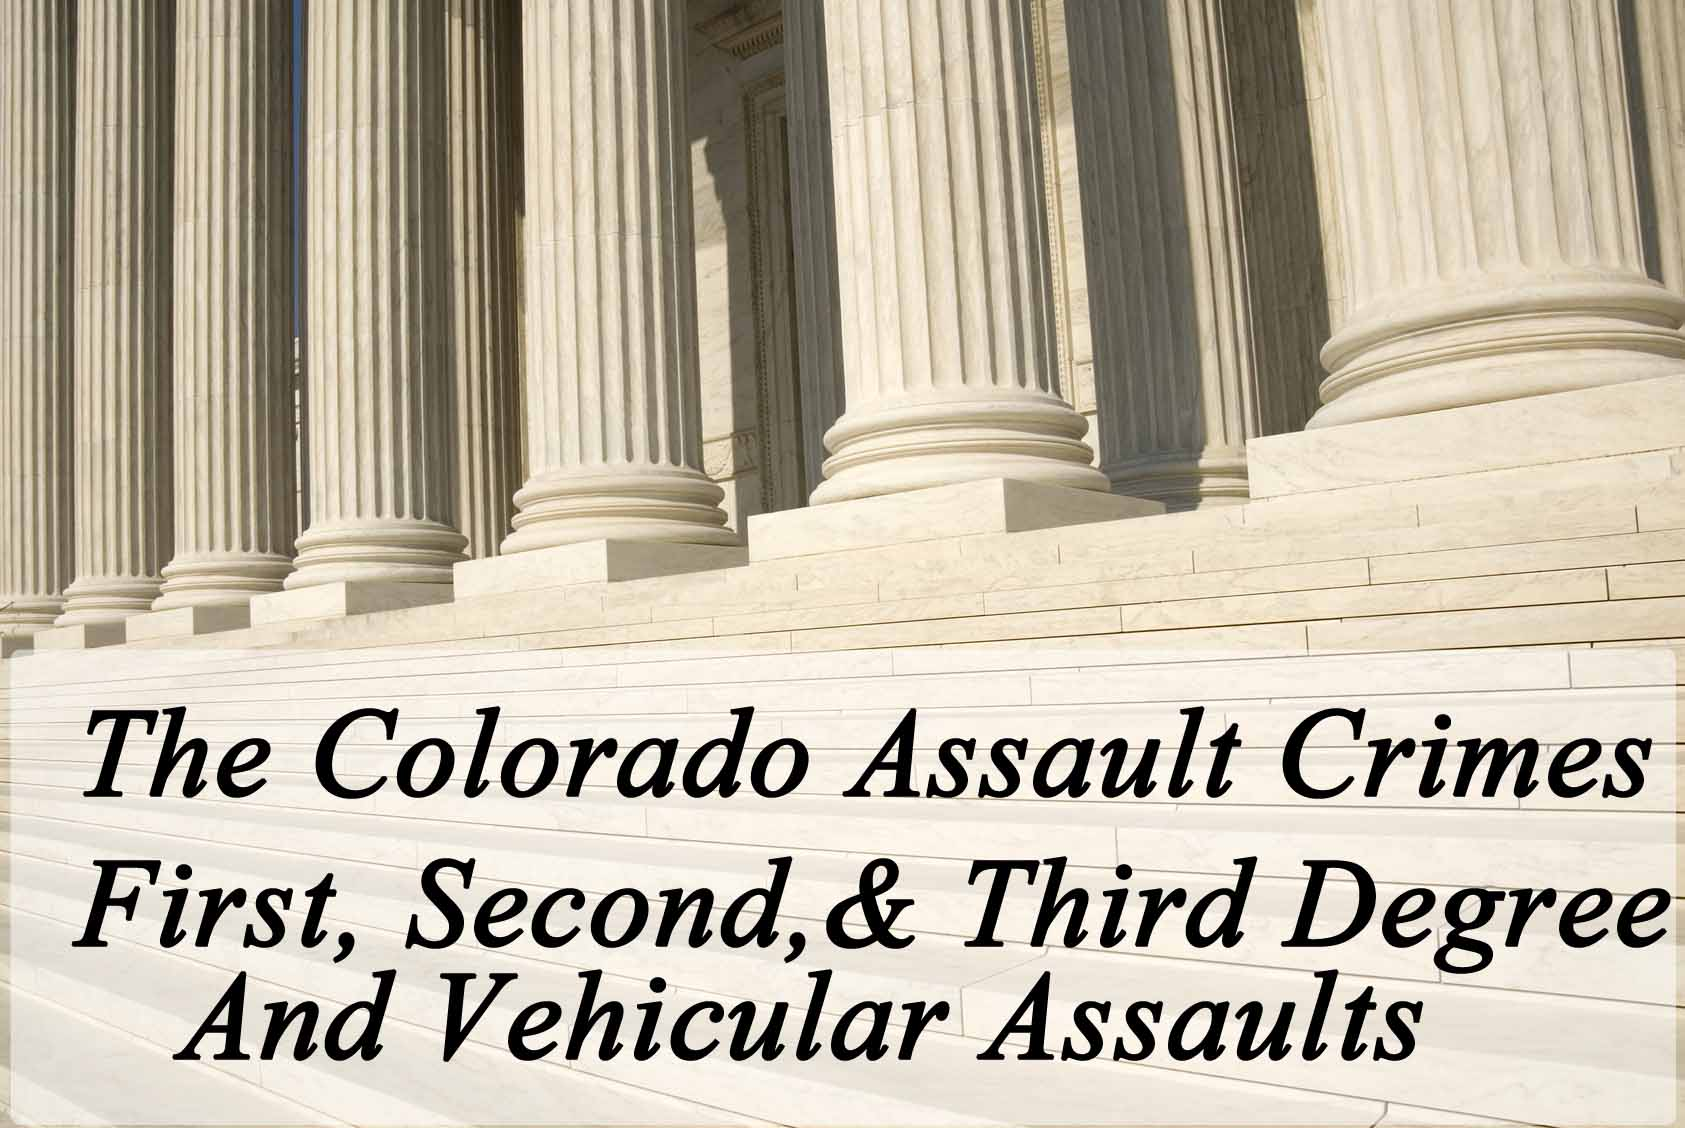 The Colorado Assault Crimes